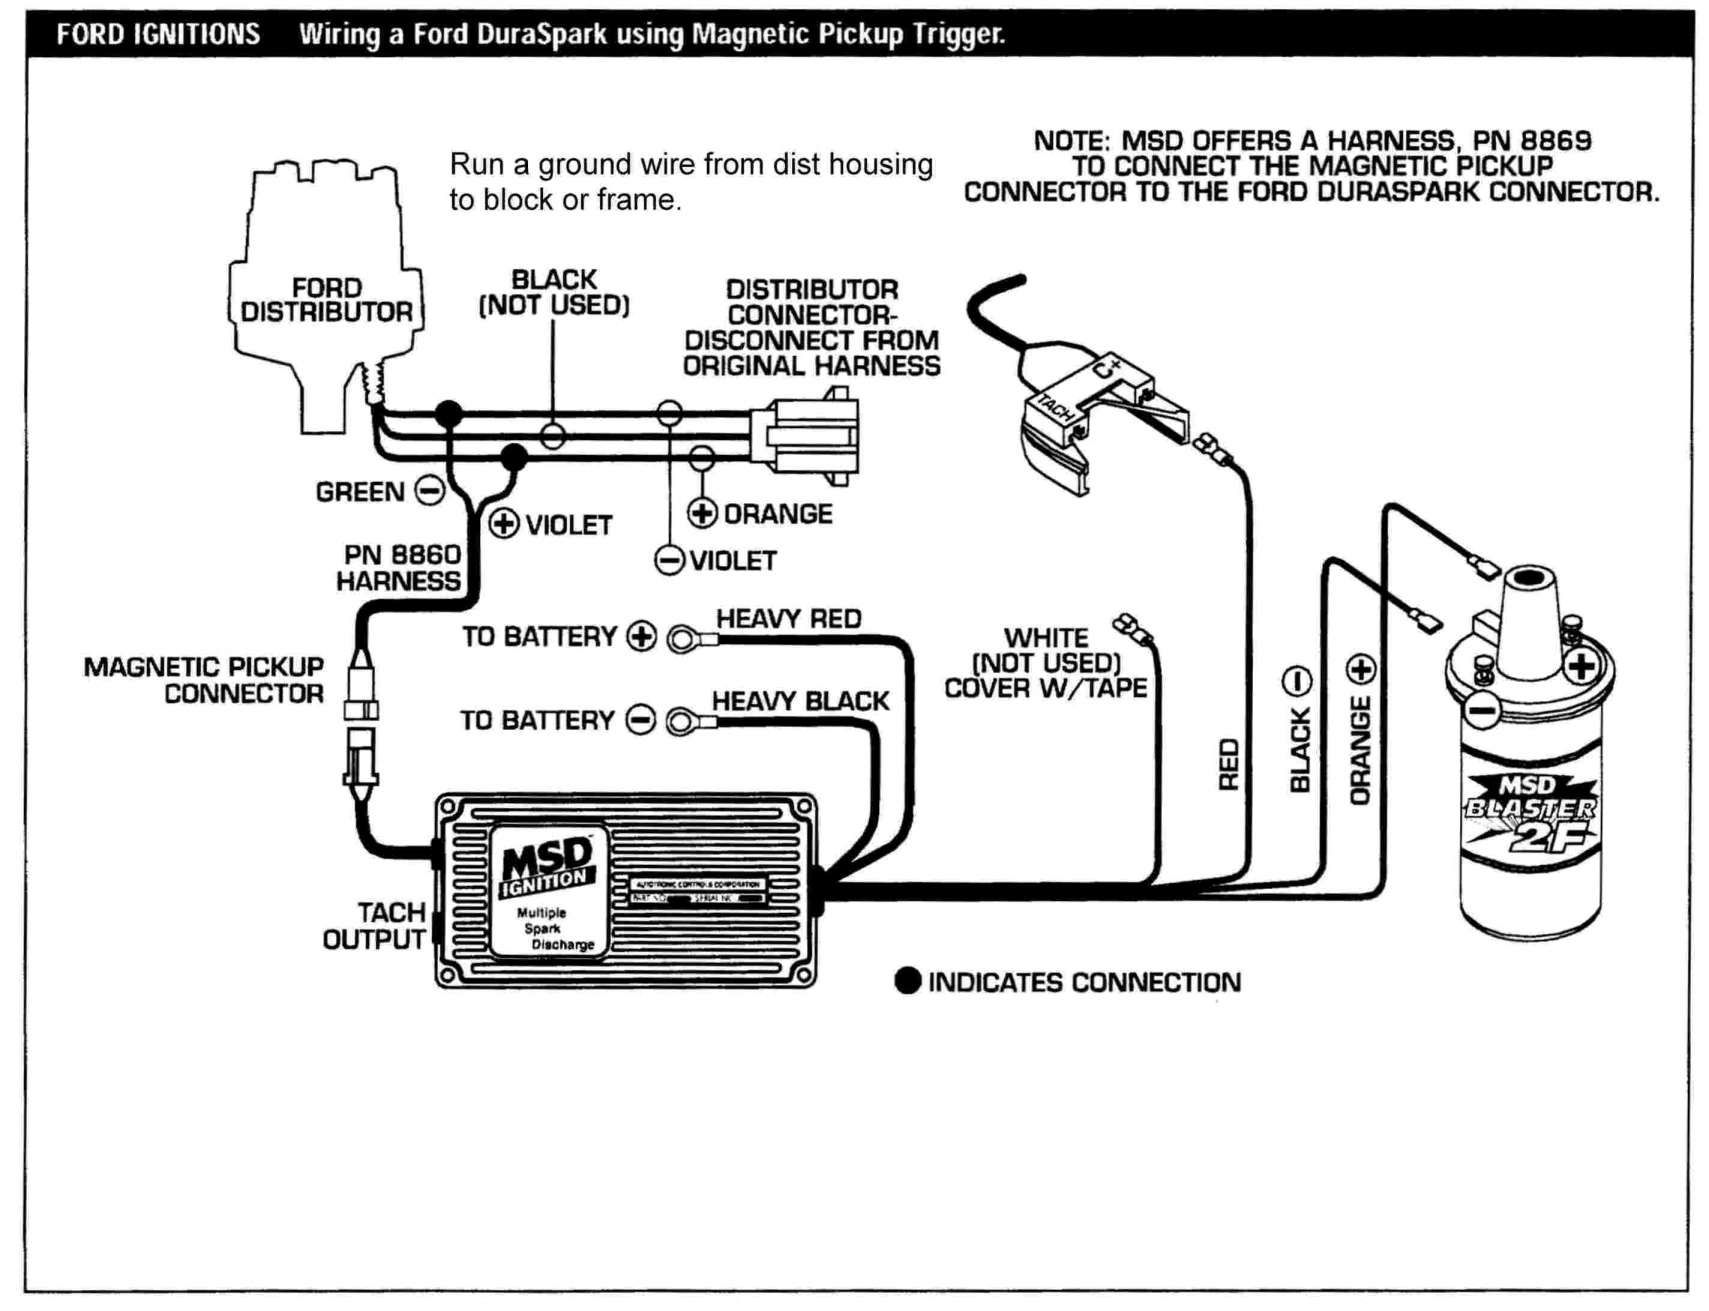 Basic Hot Rod Engine Hei Wiring Diagram And Automotive Component Engineering Ford Wire Diagram